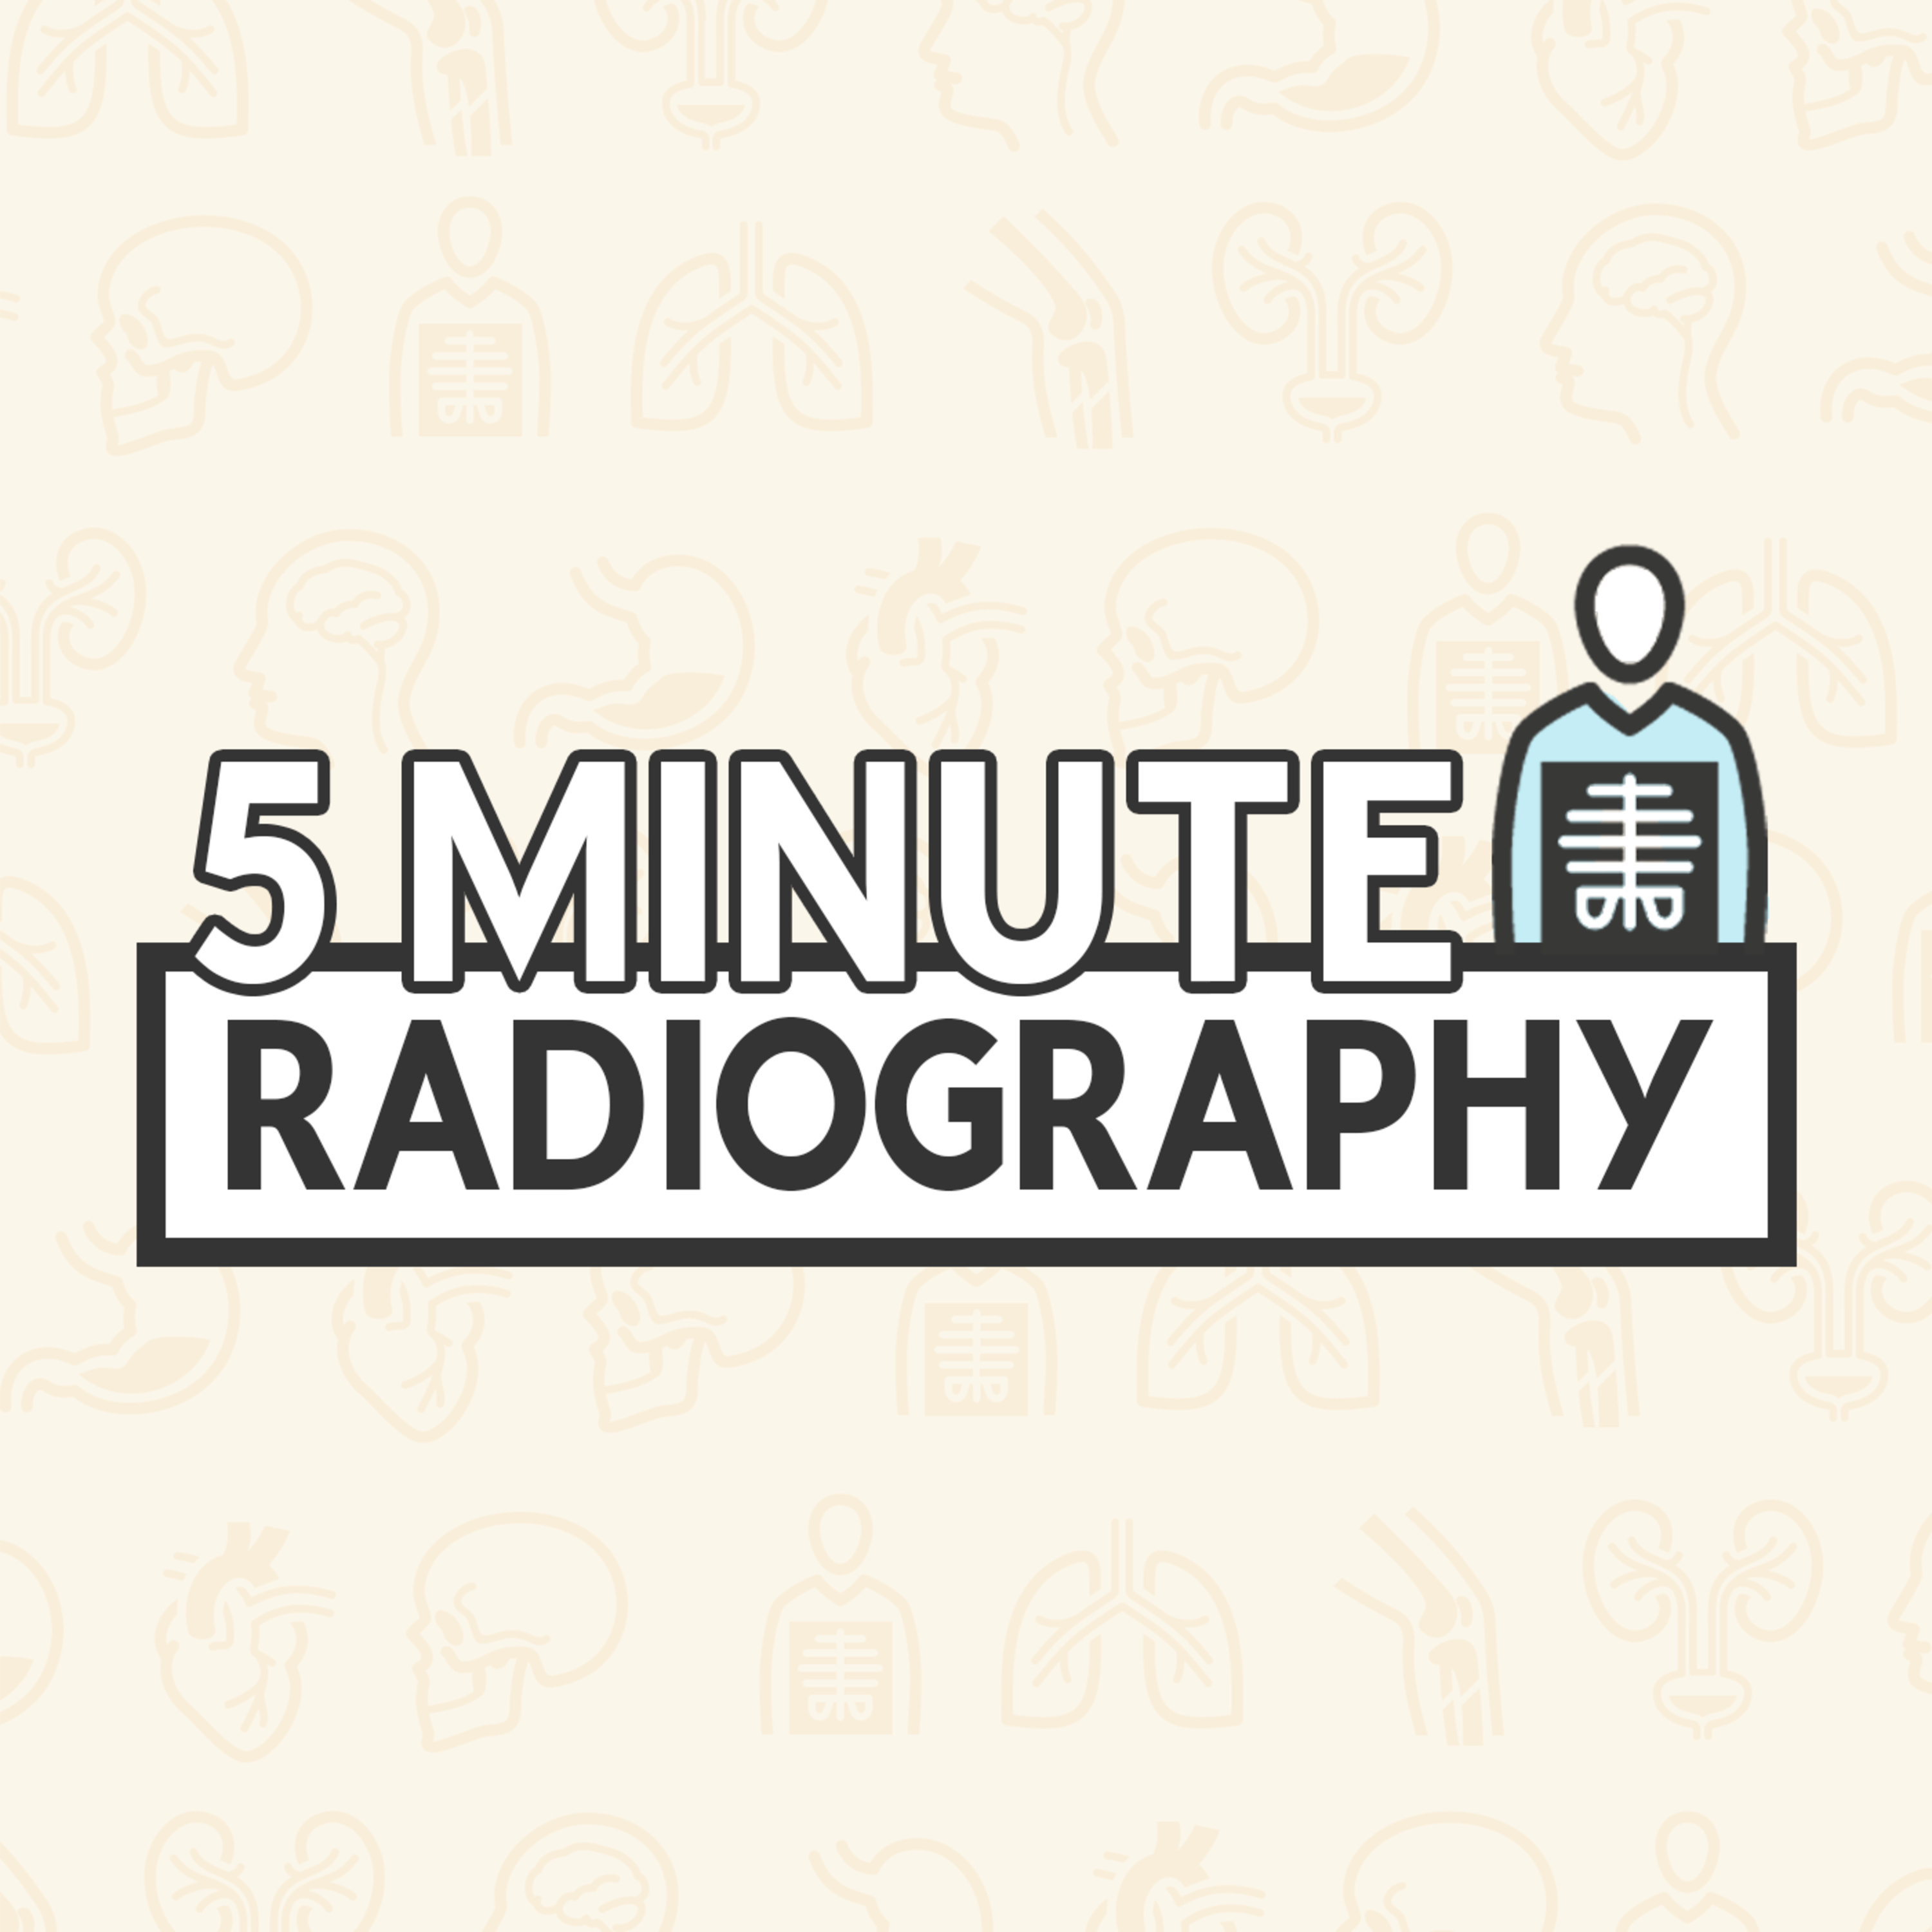 Introduction to 5 Minute Radiography